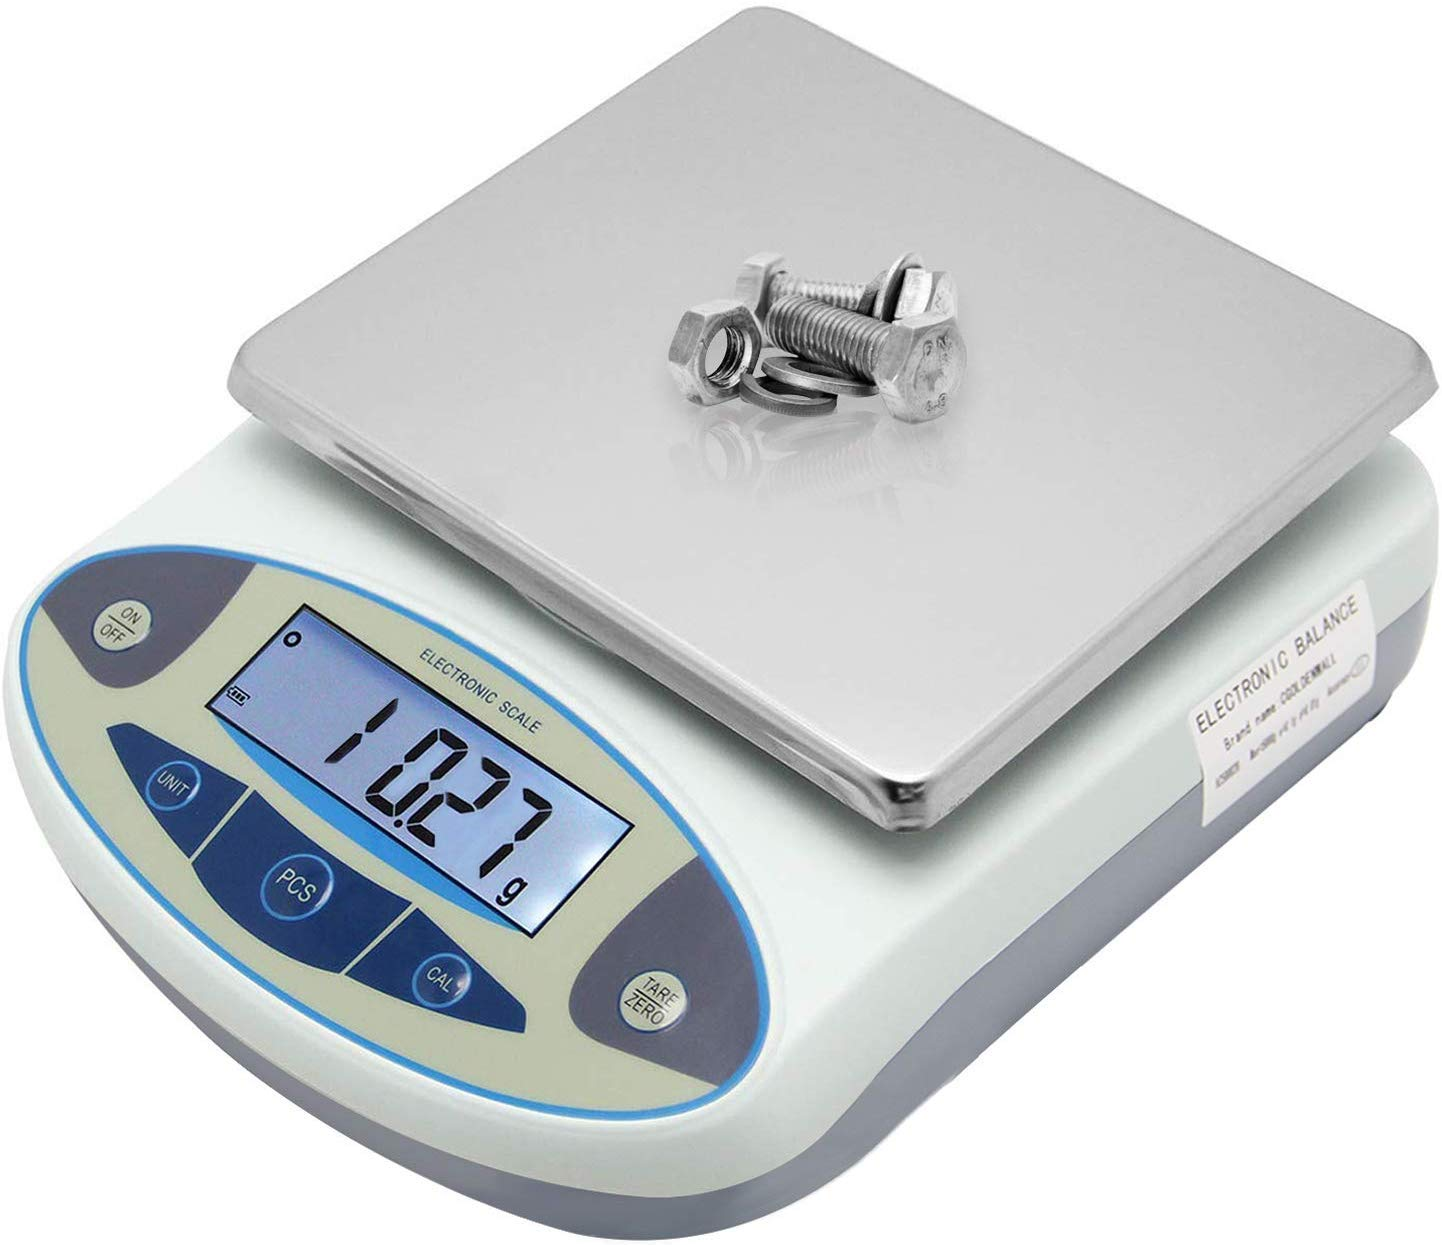 CGOLDENWALL High Precision Lab Analytical Electronic Balance Digital Precision Scale Laboratory Precision Weighing Electronic Scales Balance Jewelry Scales Gold Balance Kitchen Scales (300g, 0.01g)